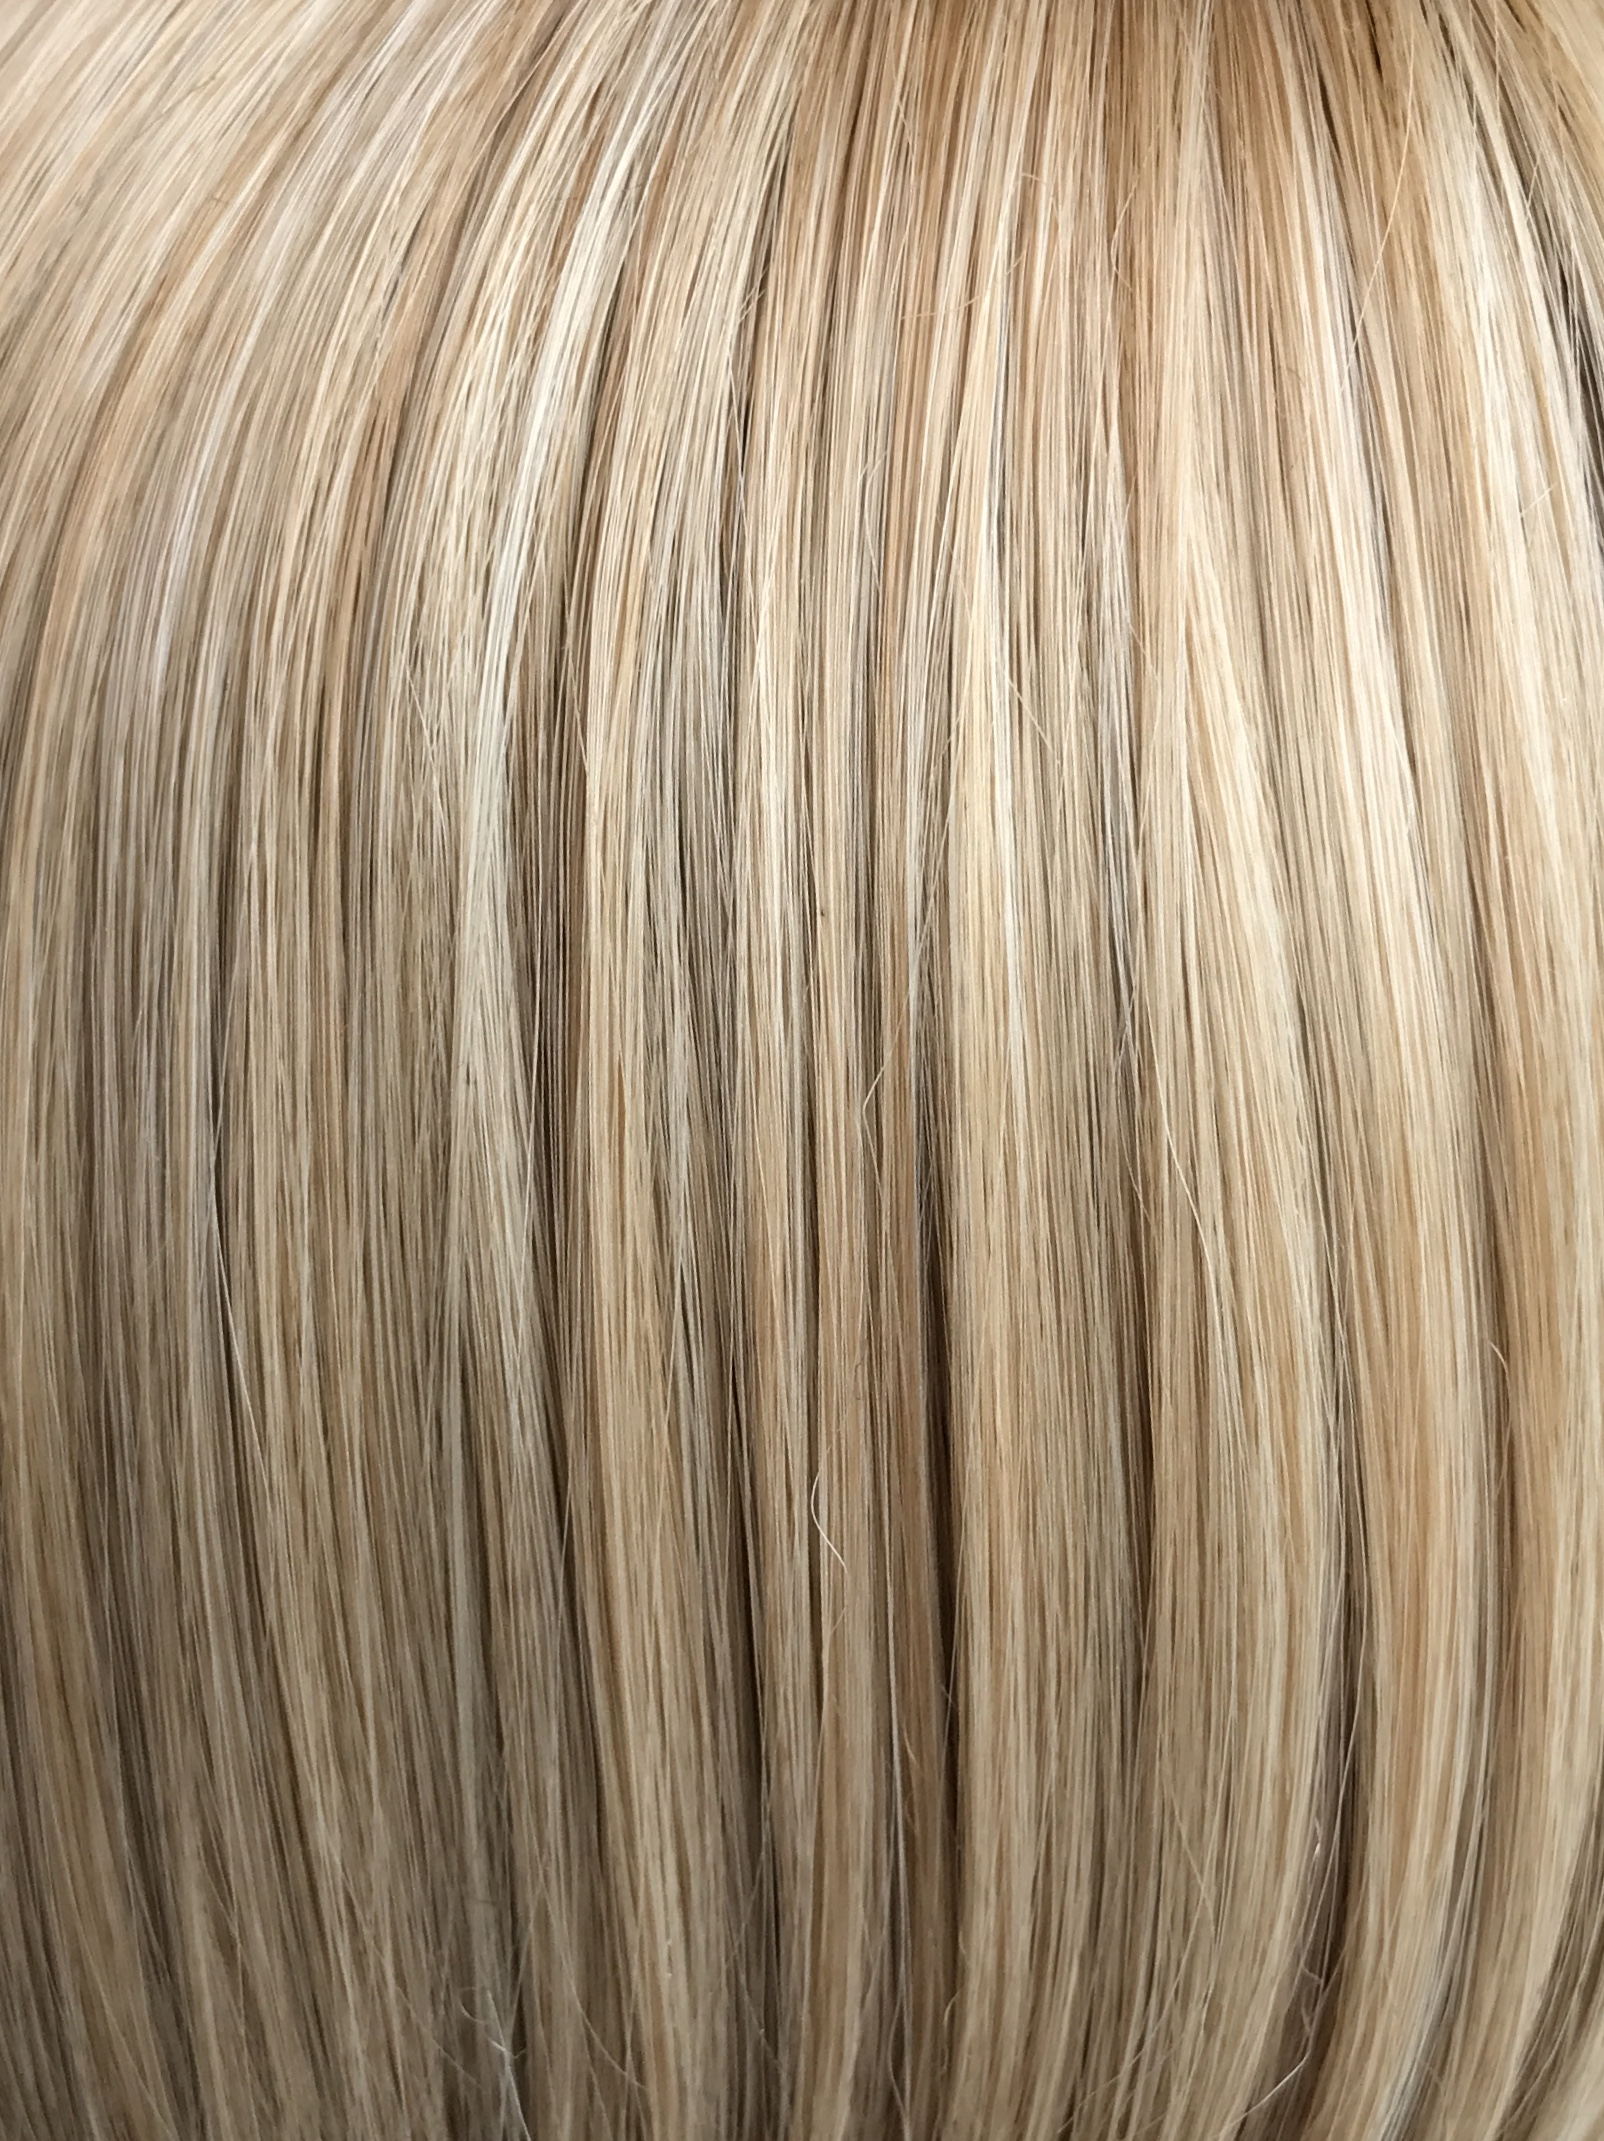 Bombshell Natural Wavy 3 4 Hair Piece Extension